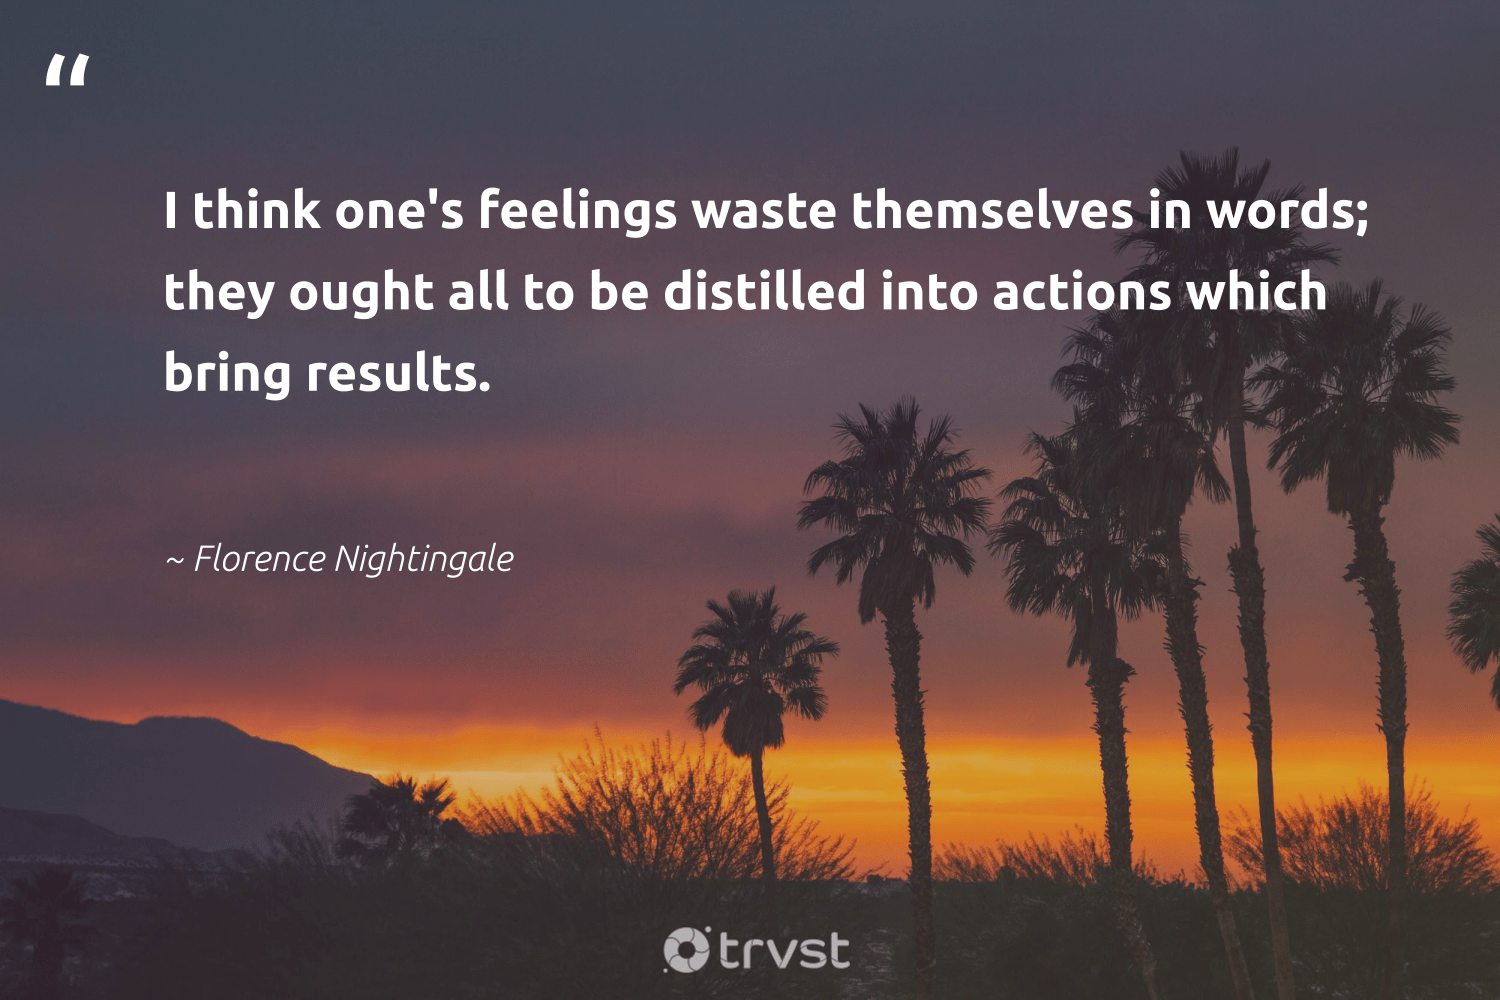 """I think one's feelings waste themselves in words; they ought all to be distilled into actions which bring results.""  - Florence Nightingale #trvst #quotes #waste #results #togetherwecan #dosomething #begreat #impact #health #socialchange #nevergiveup #beinspired"